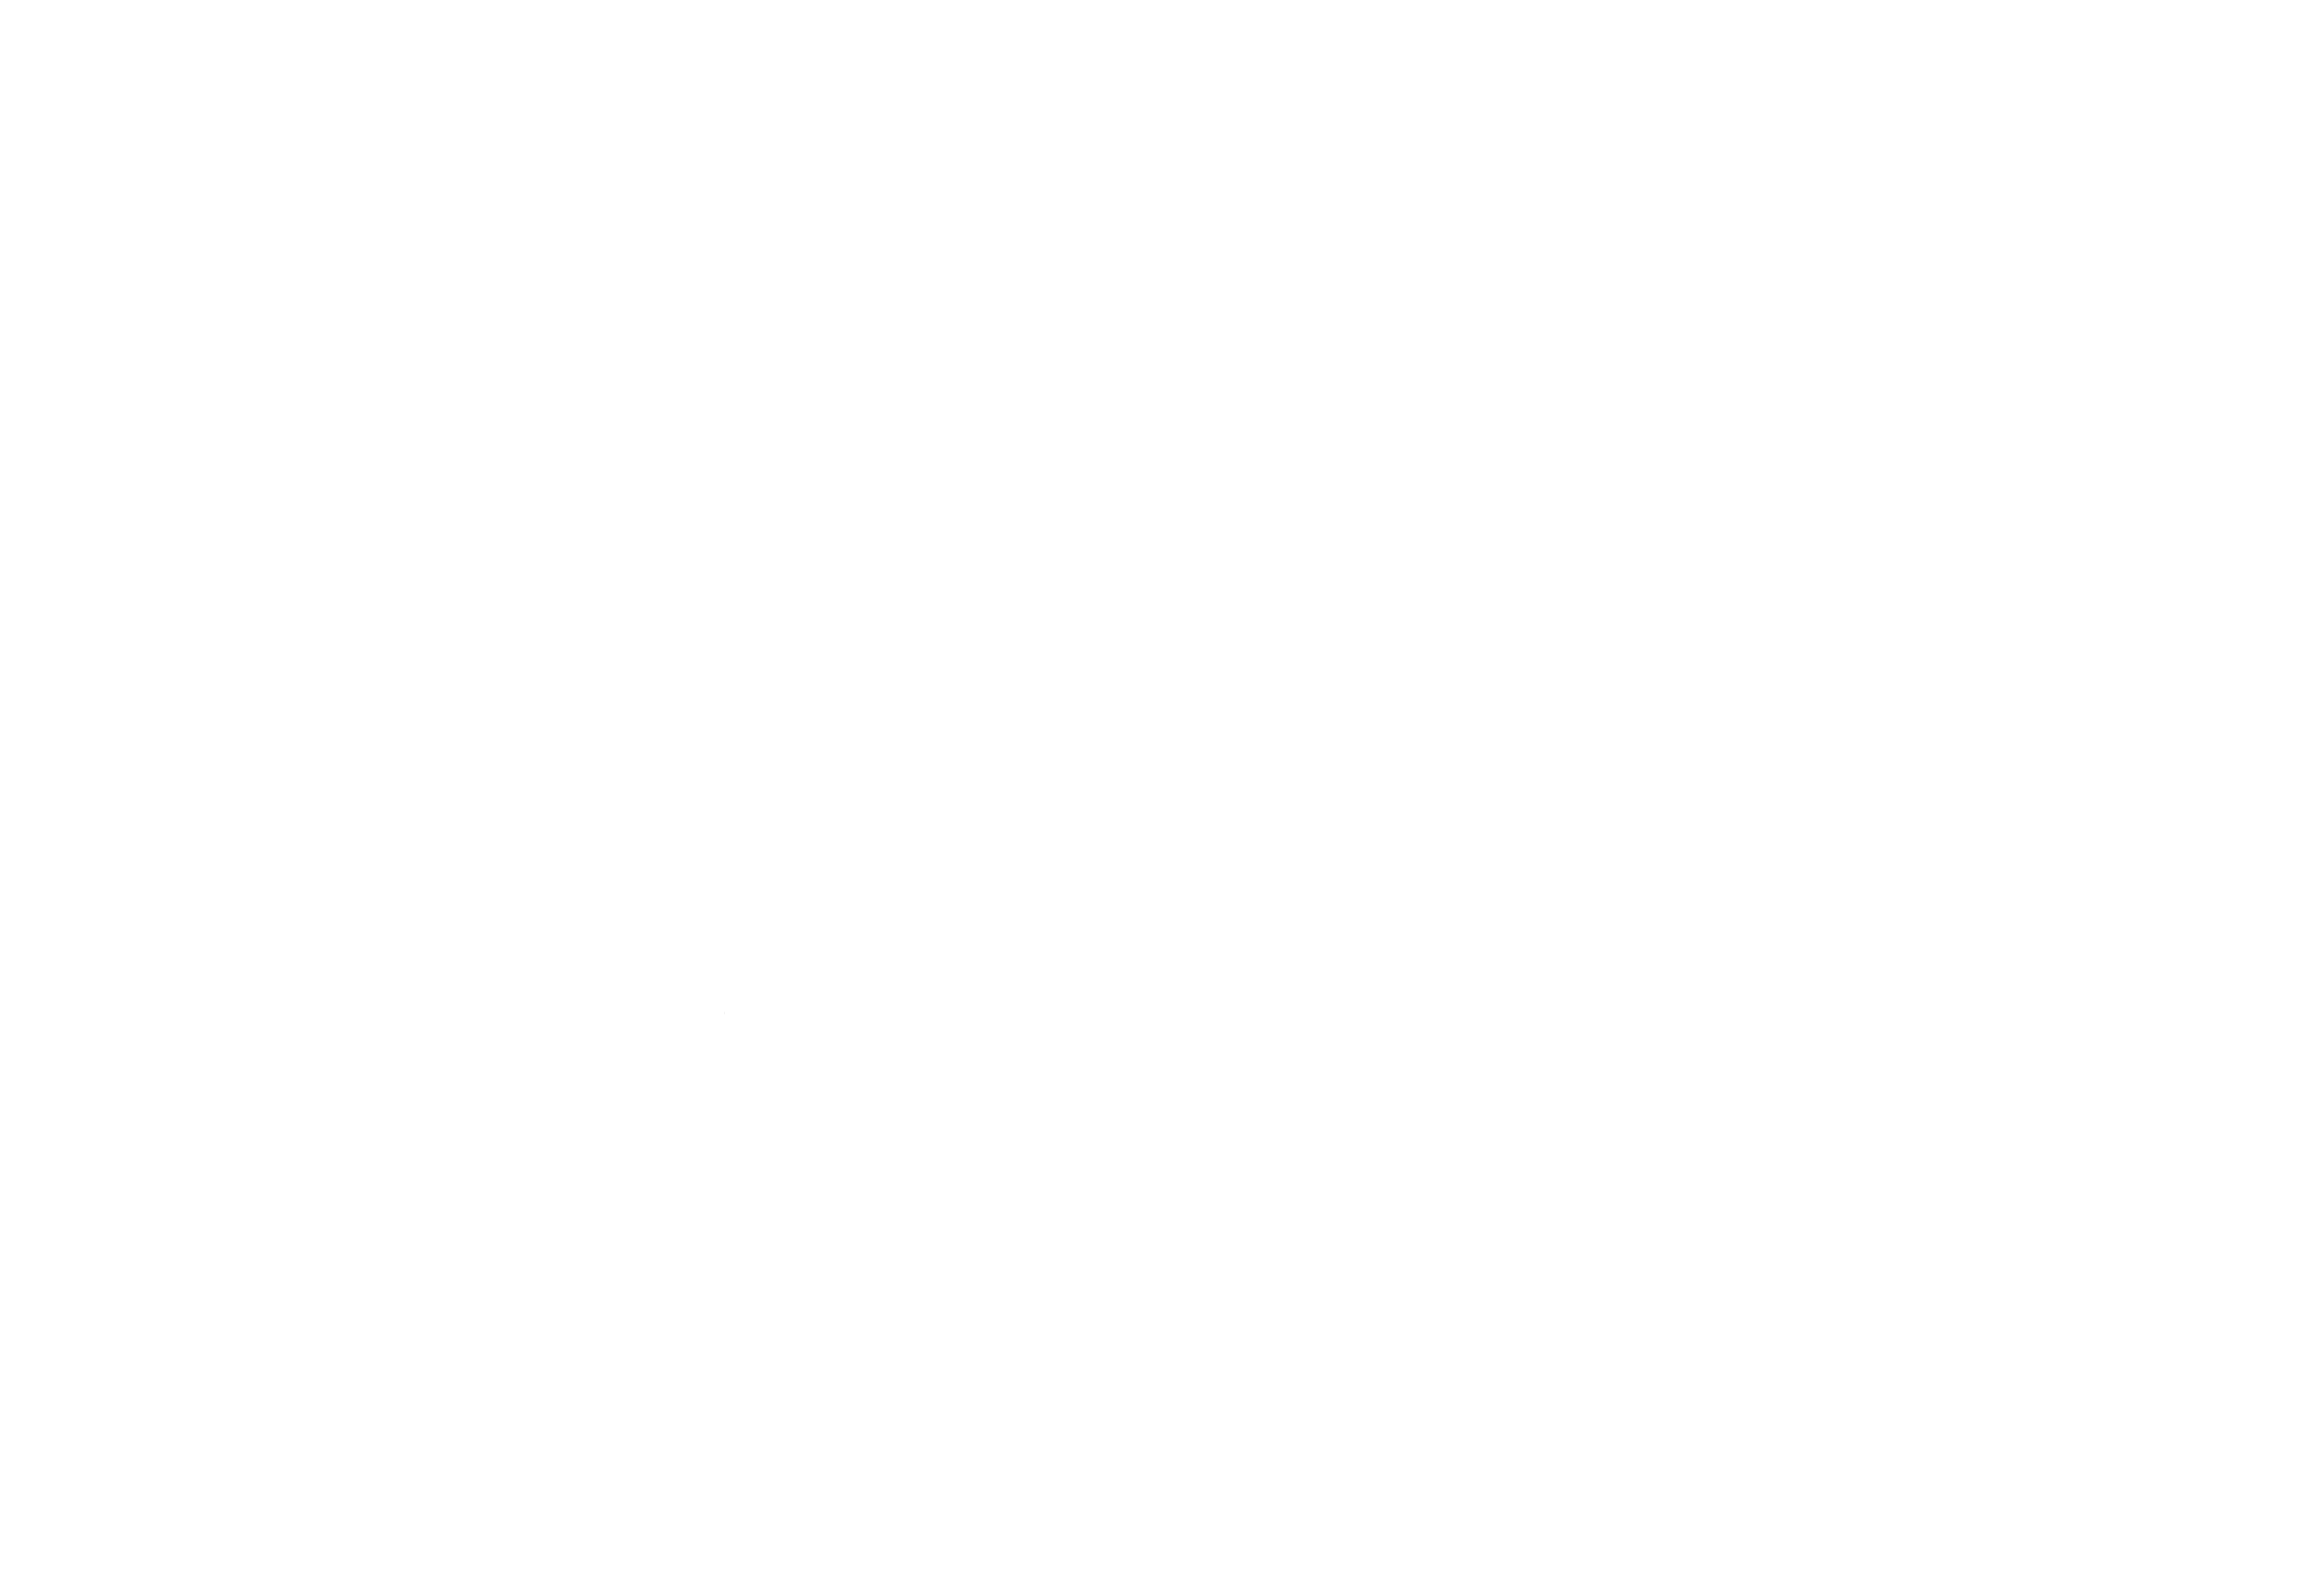 Los Angeles 2017_Online Selected_White.png